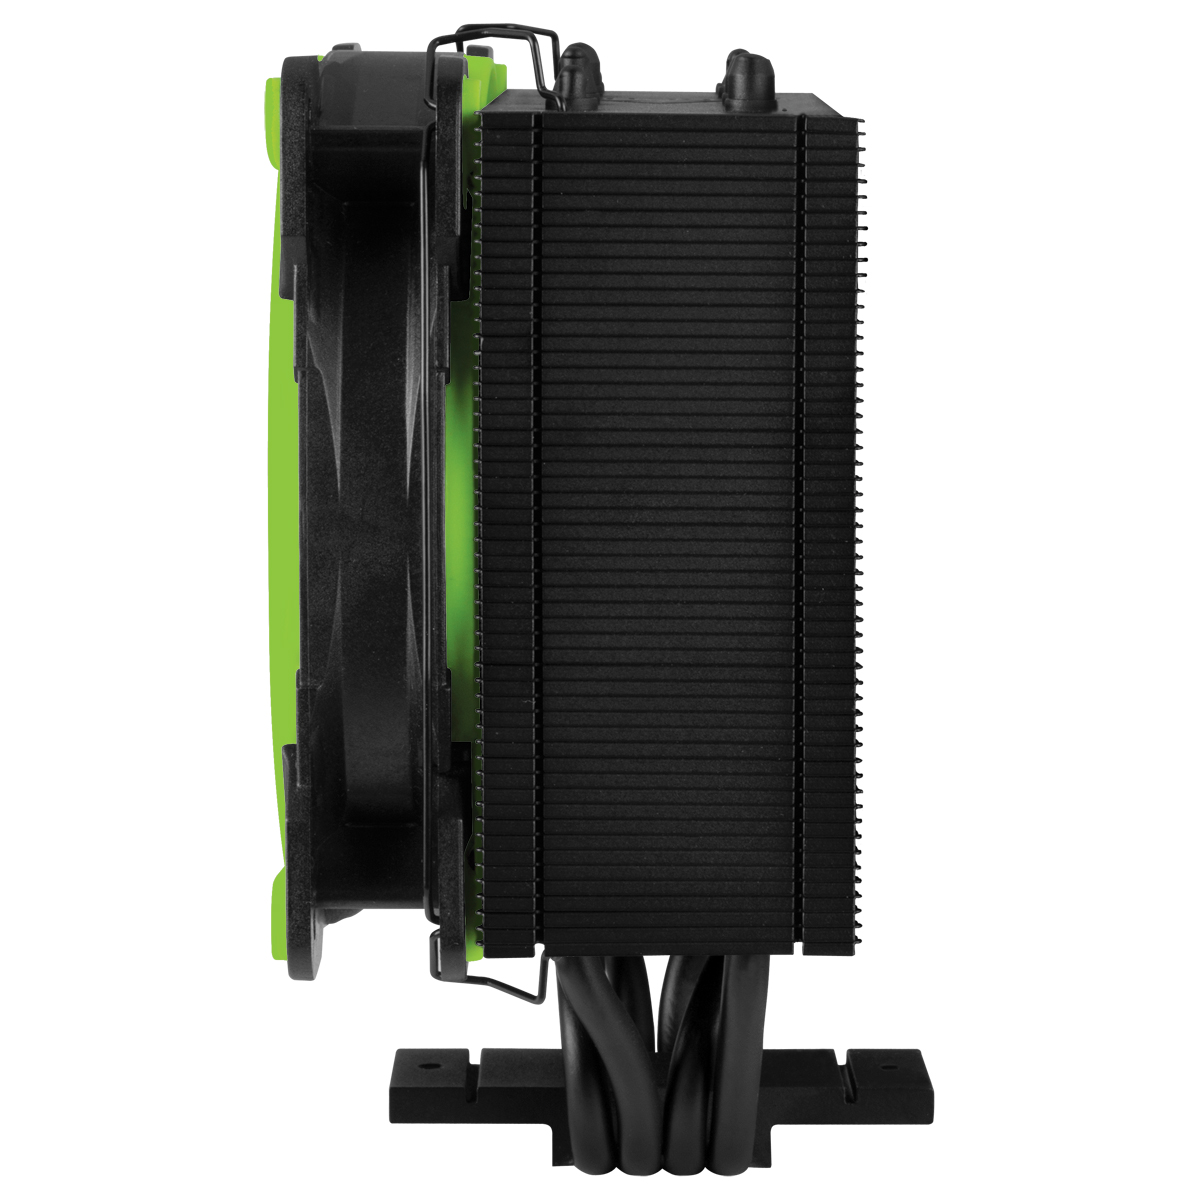 Tower CPU Cooler with BioniX P-Fan ARCTIC Freezer 34 eSports (Green) Side View